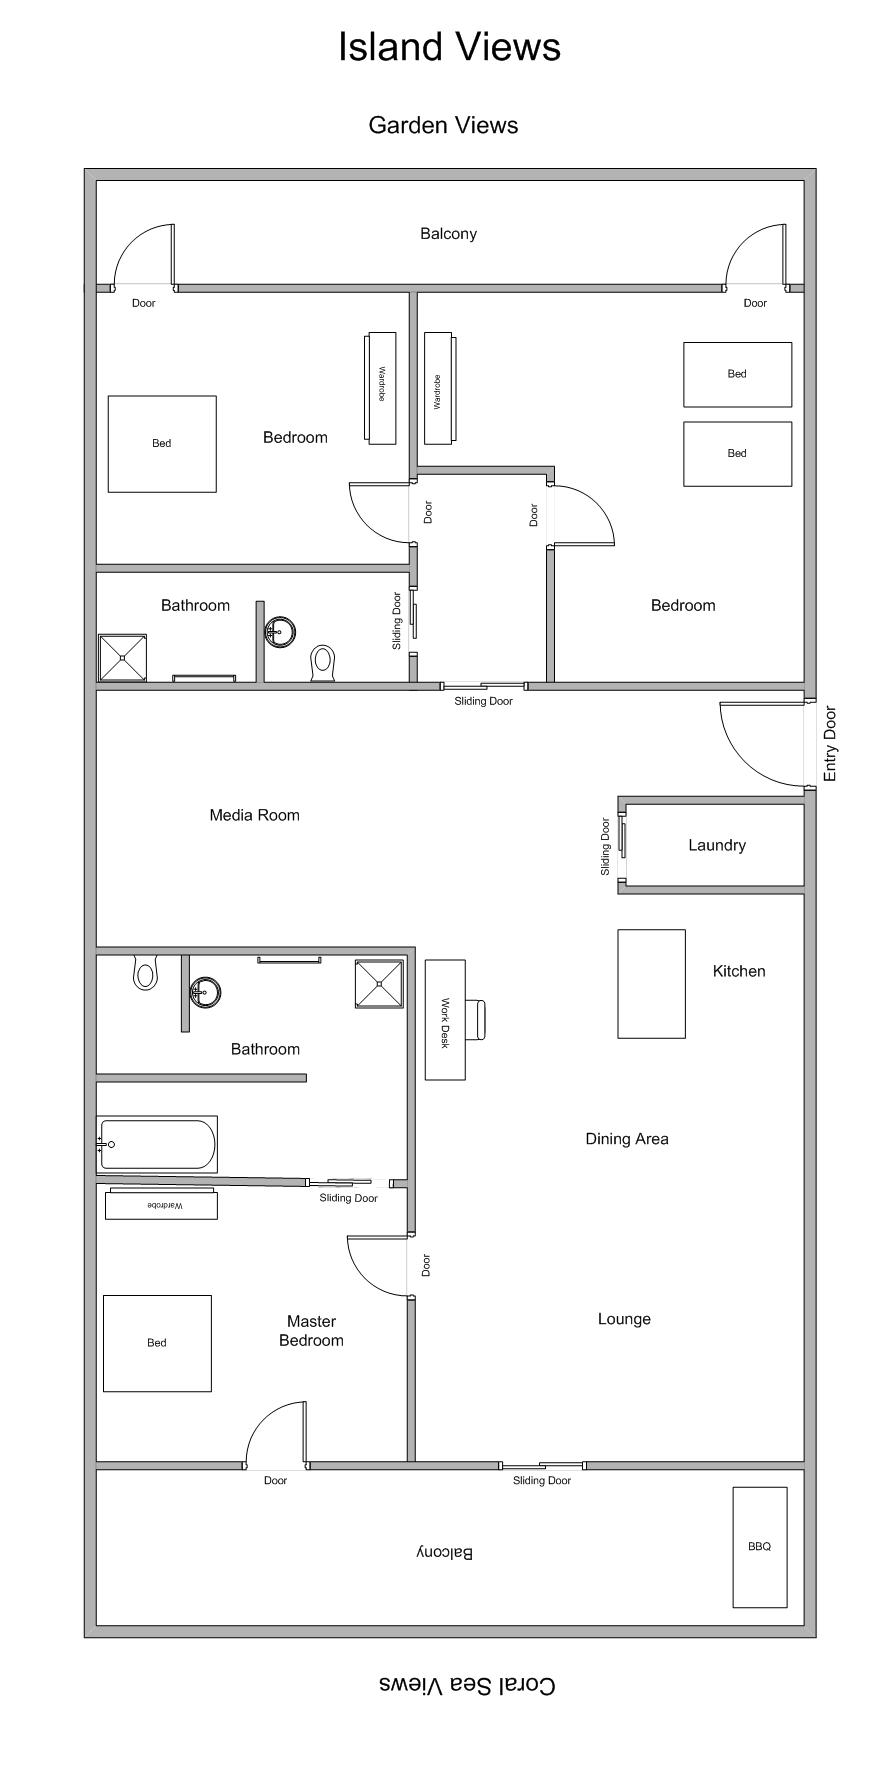 Island Views 11 - Luxury 3 Bedroom Apartment Floor Plan